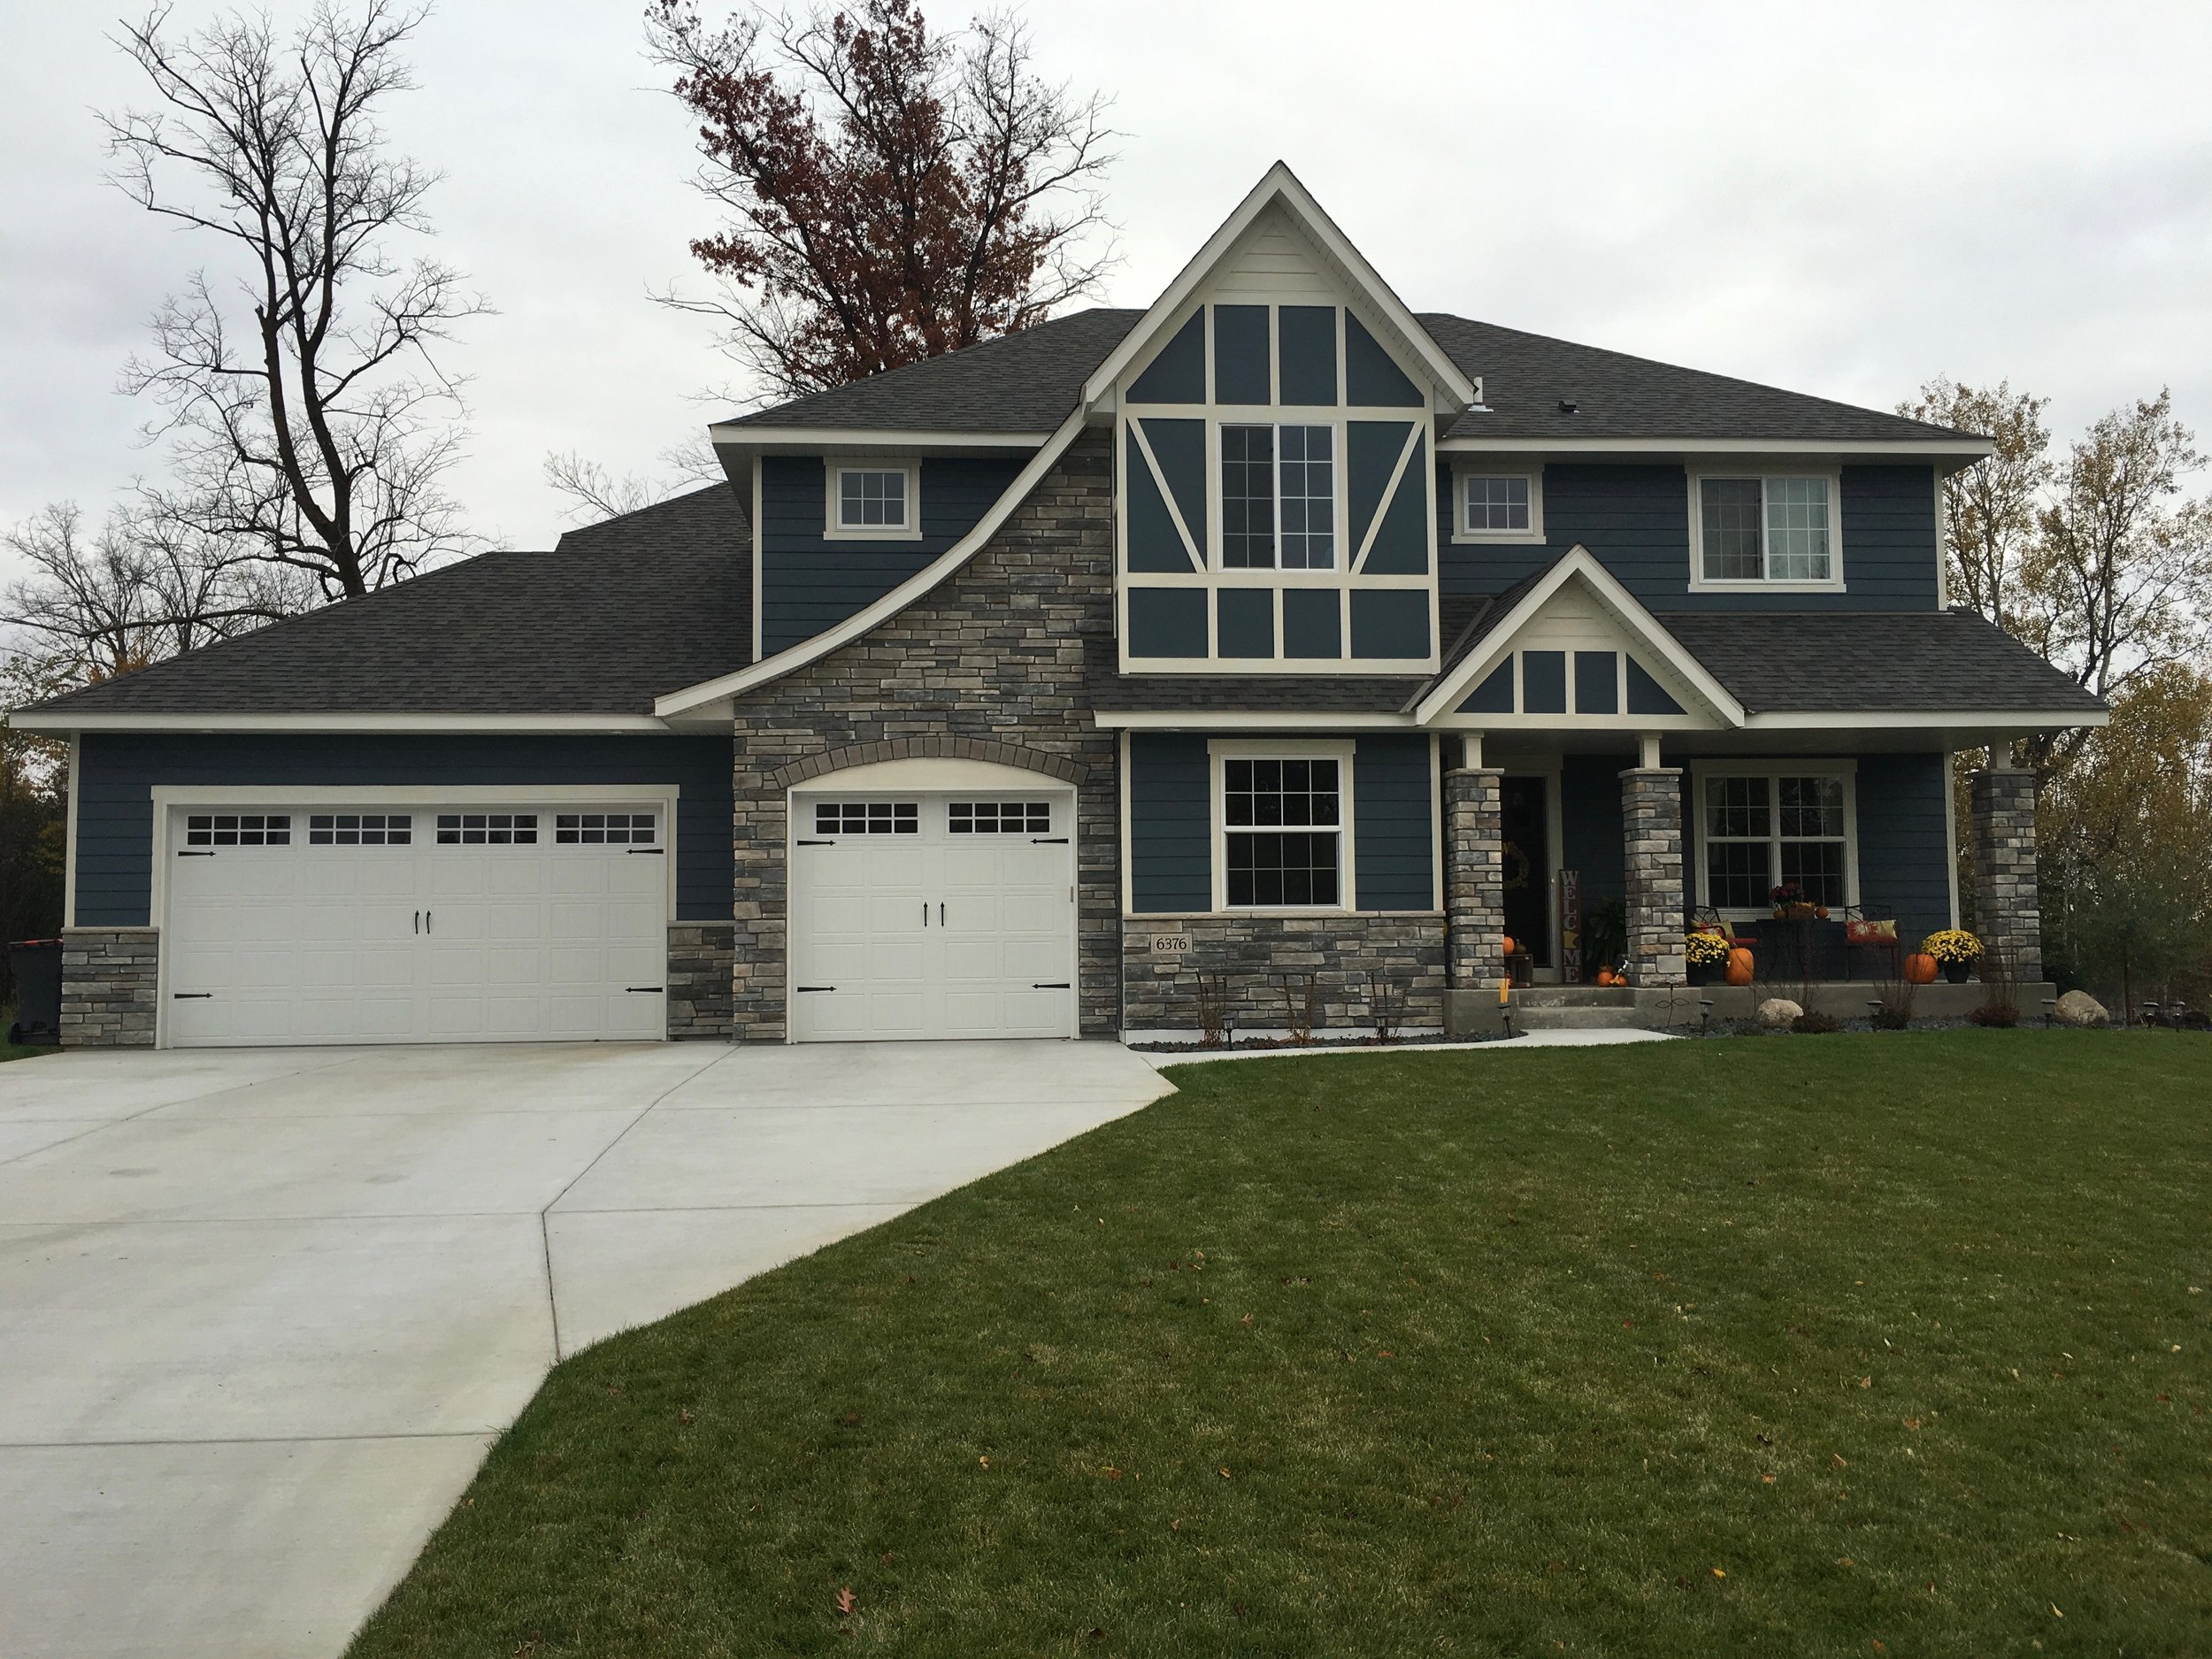 Custom two story home built by Bravo Homes by Dean Croat Construction